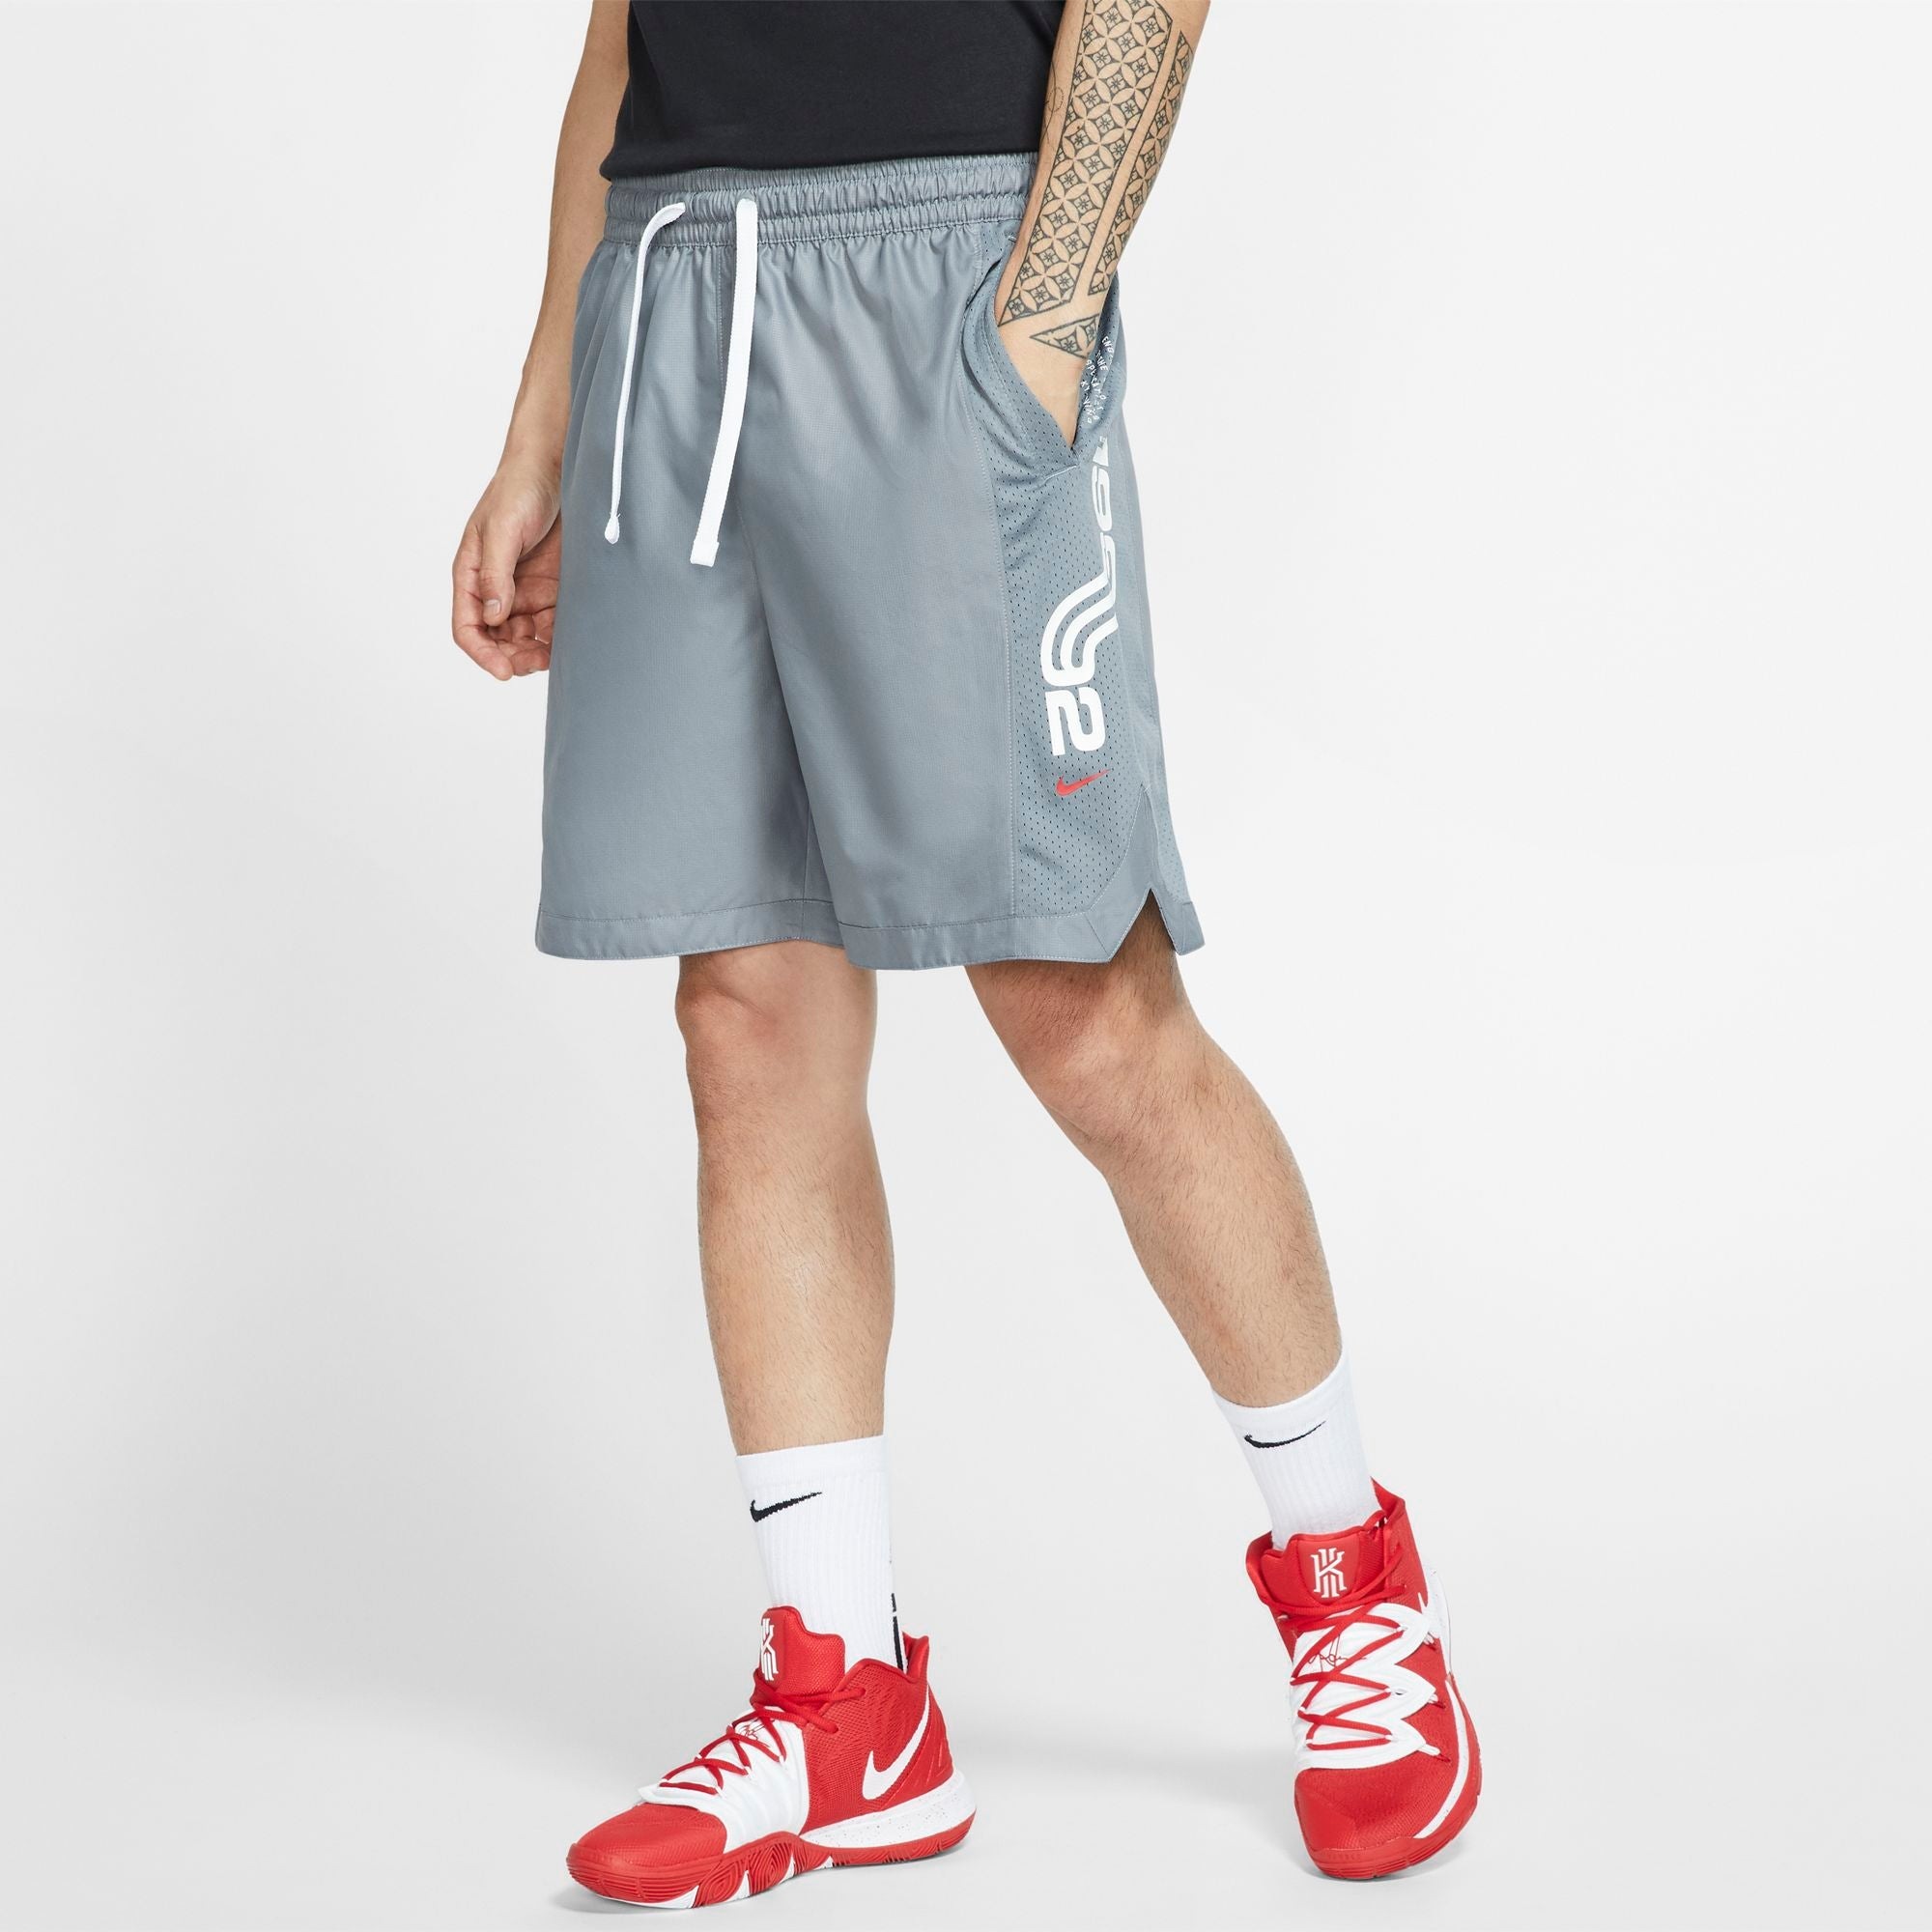 Nike Kyrie Dri-Fit Basketball Shorts - Cool Grey/University Red